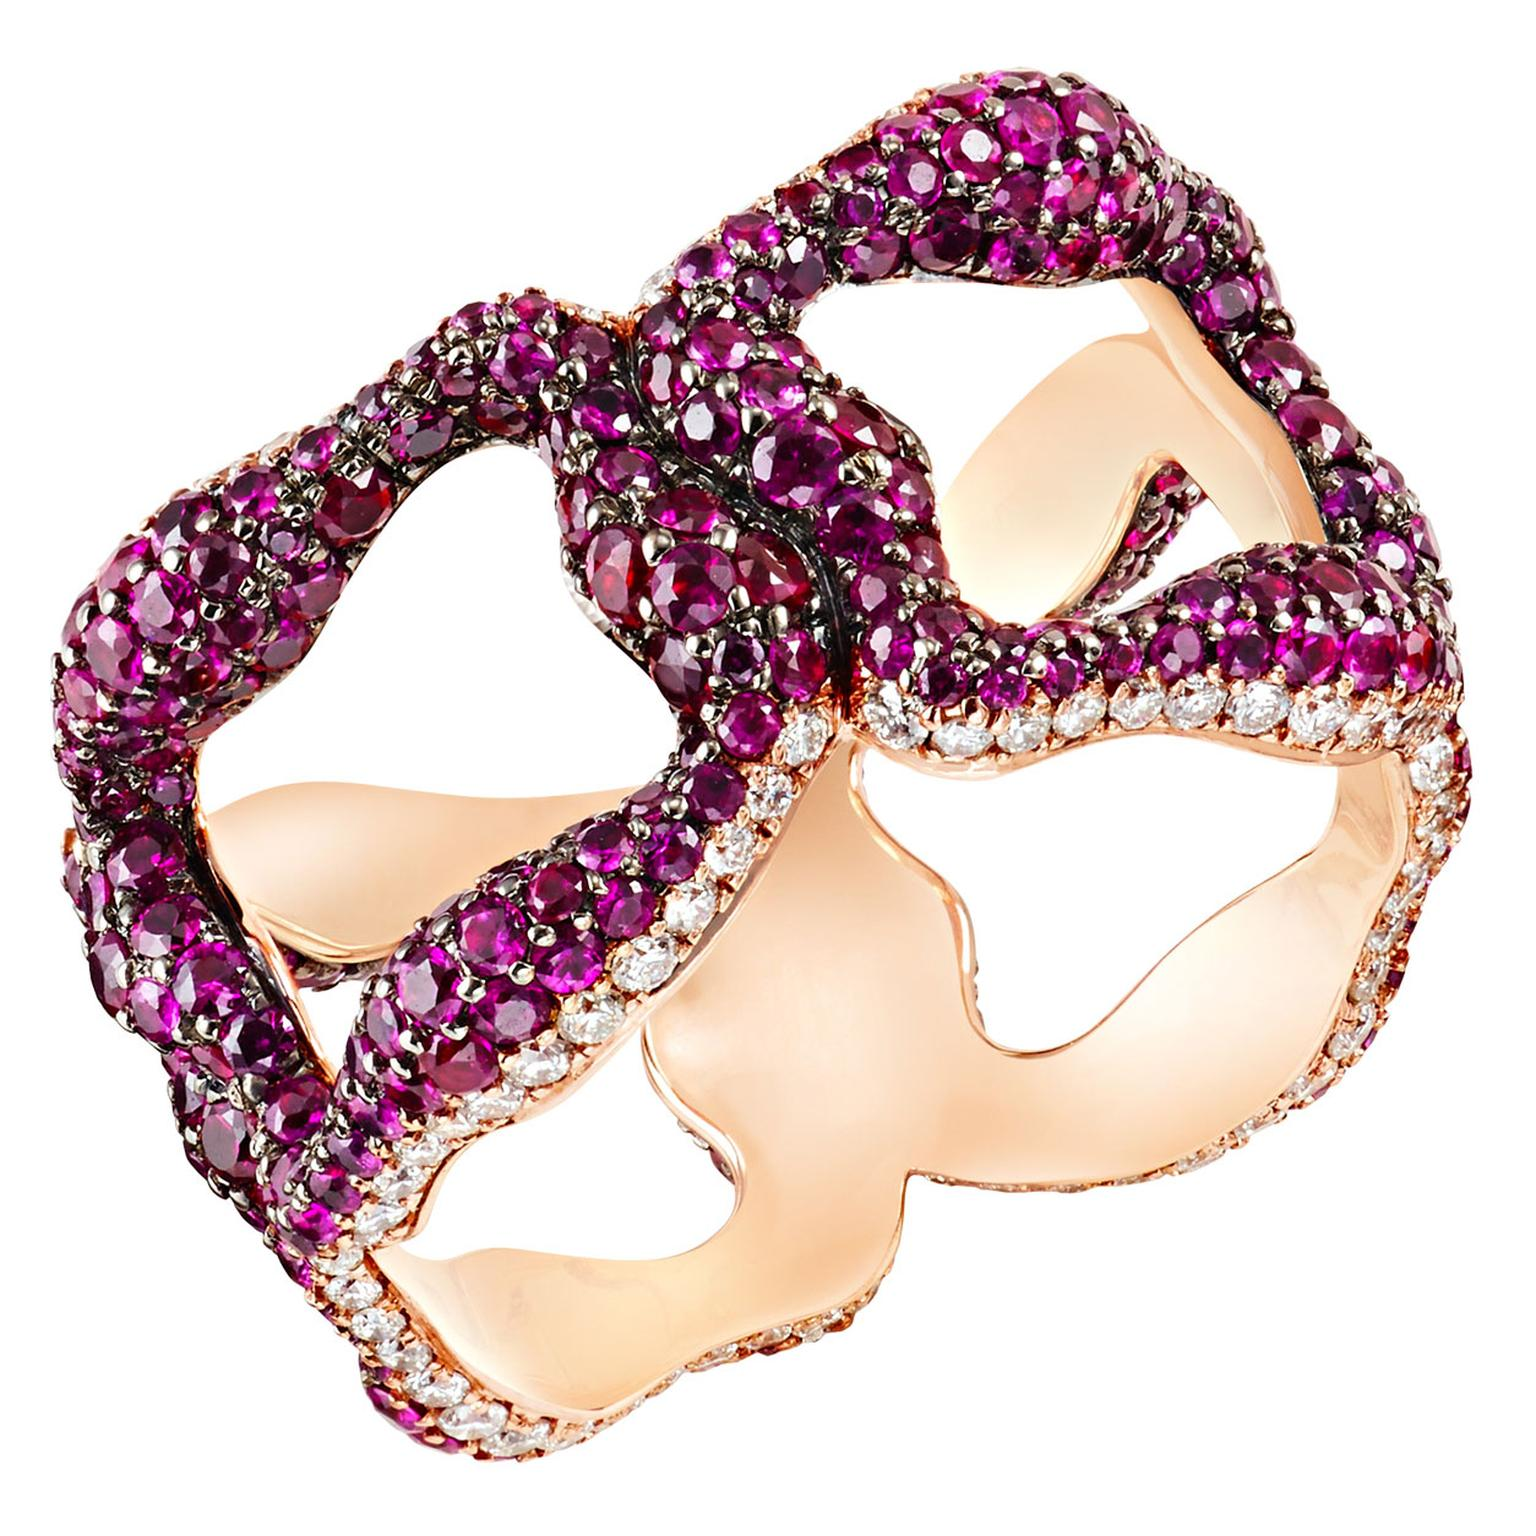 Fabergé Emotion Gypsy ruby ring